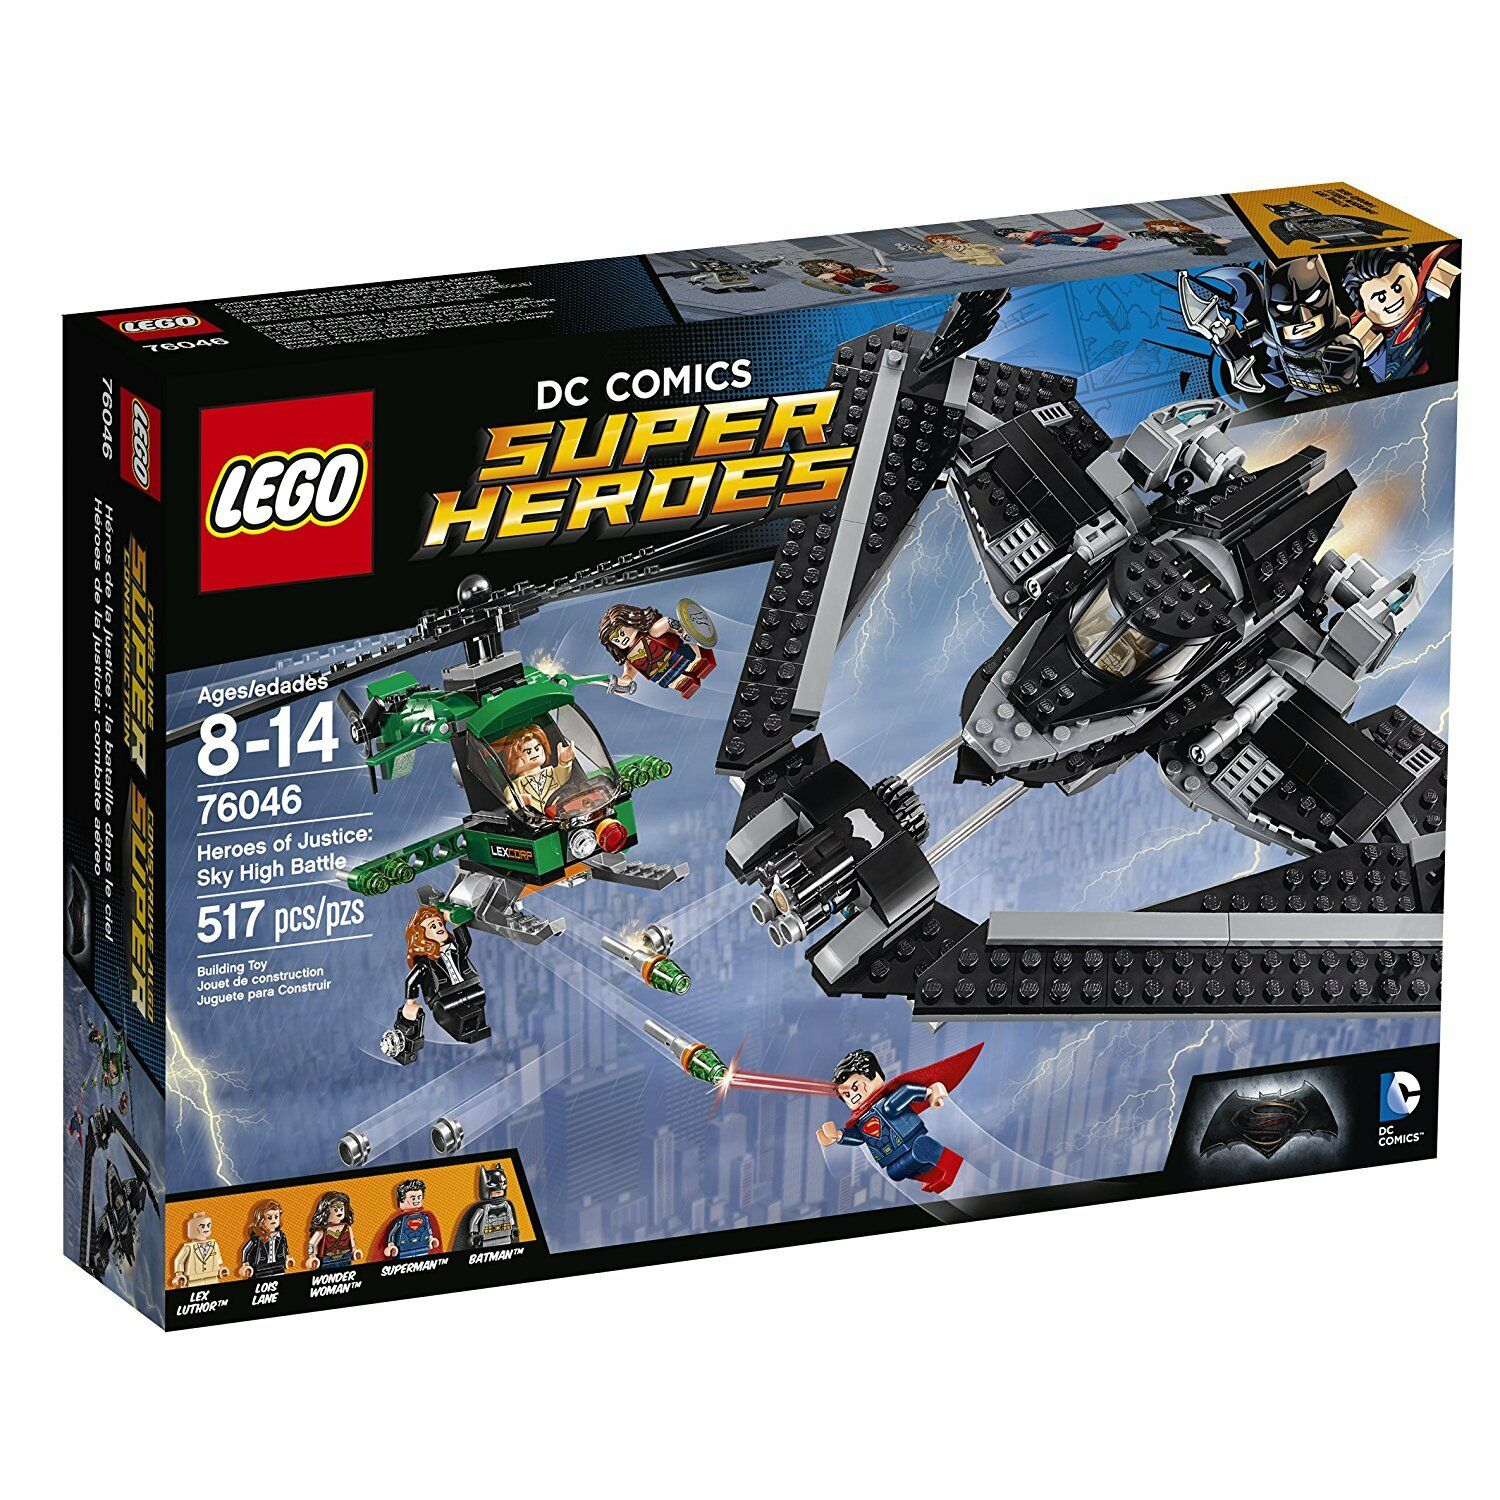 Lego Marvel Super Heroes 76046 HEROES OF JUSTICE SKY HIGH BATTLE Batman Superman